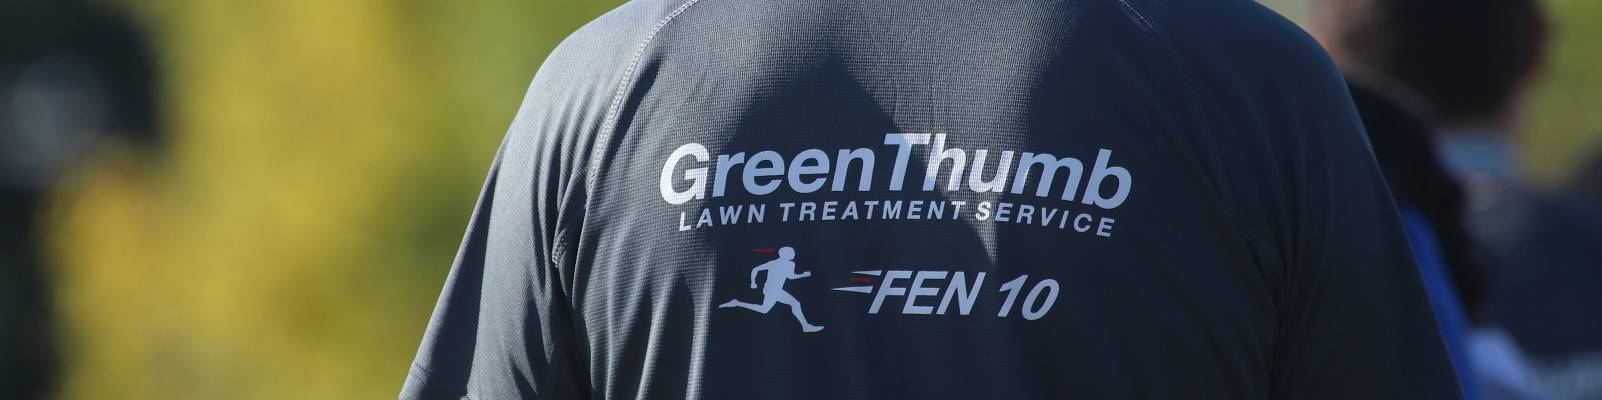 GreenThumb Fen 10 runners